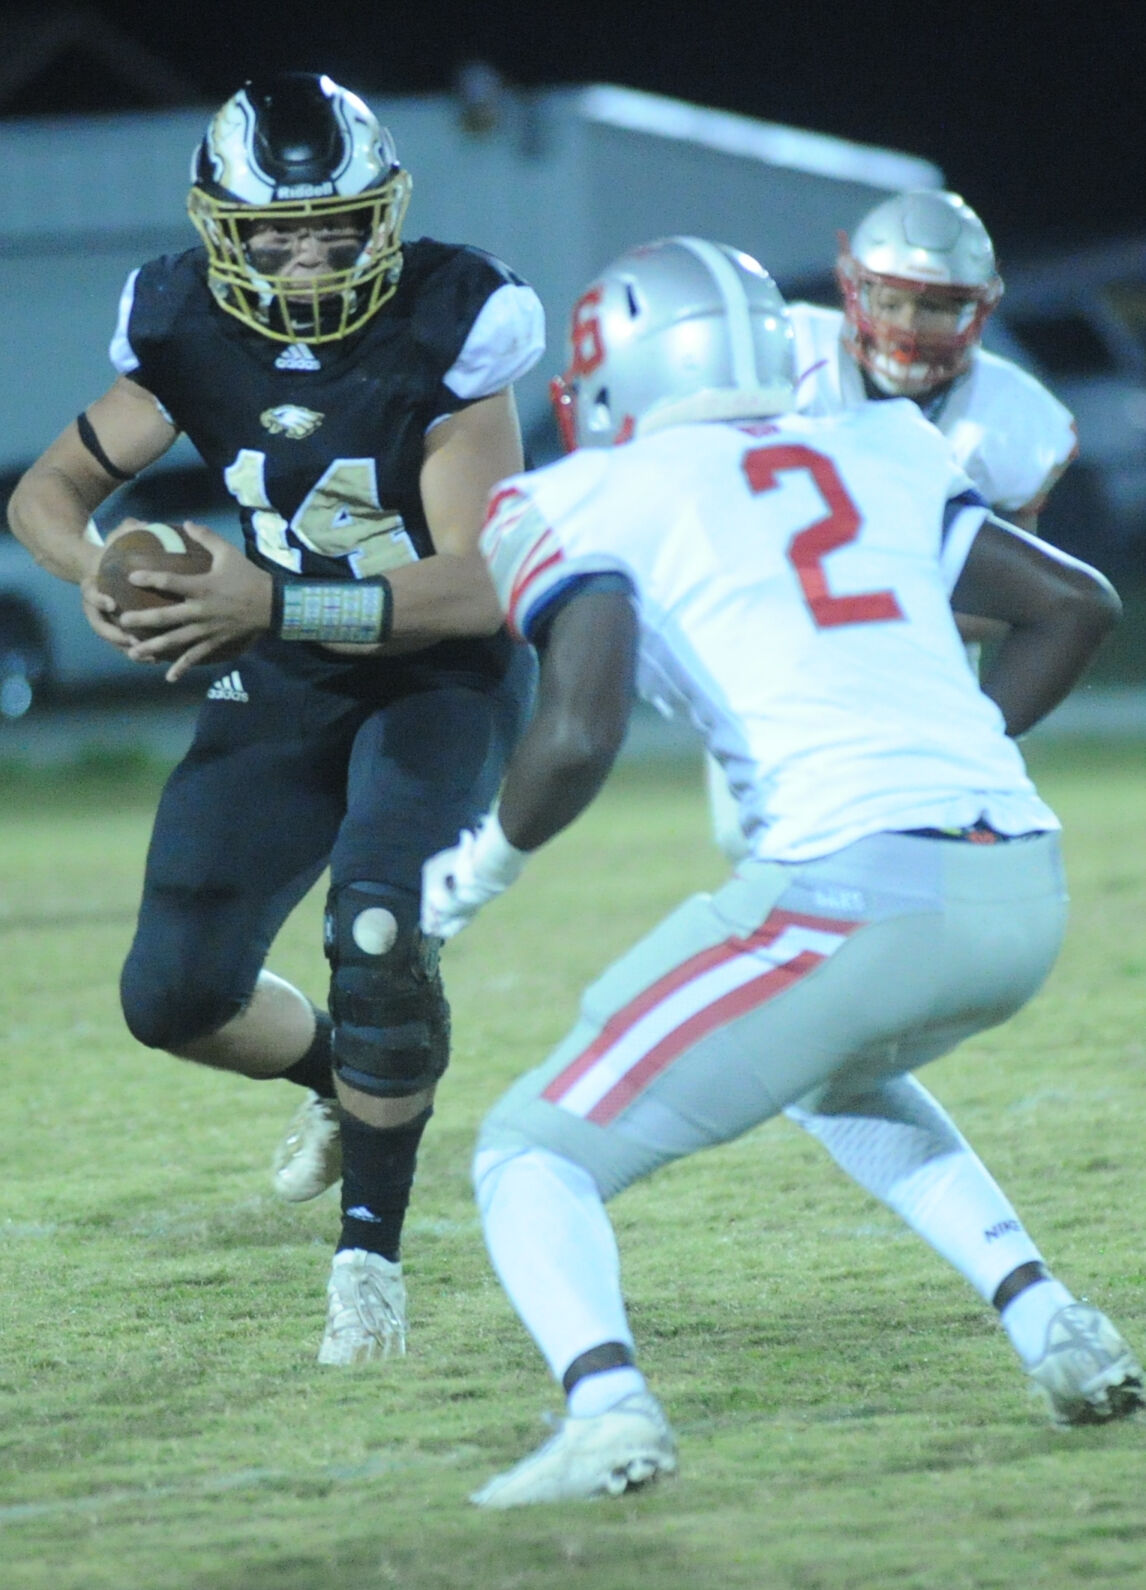 Turnovers costly for East Lawrence in playoff loss